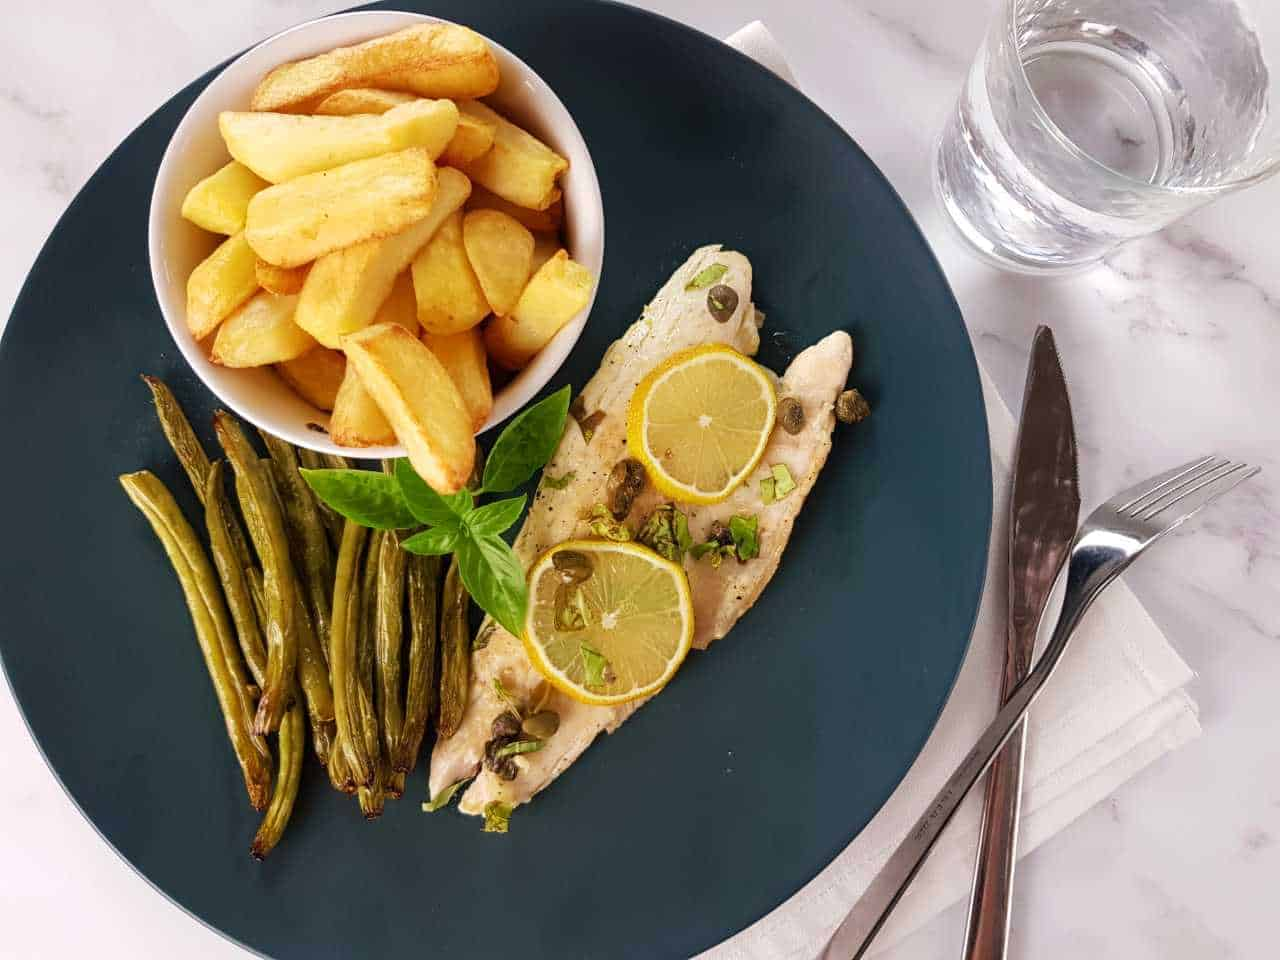 Pan seared sea bass with lemon and capers on a blue plate with chips and green beans on a marble table. Glass of water and cutlery on the side.